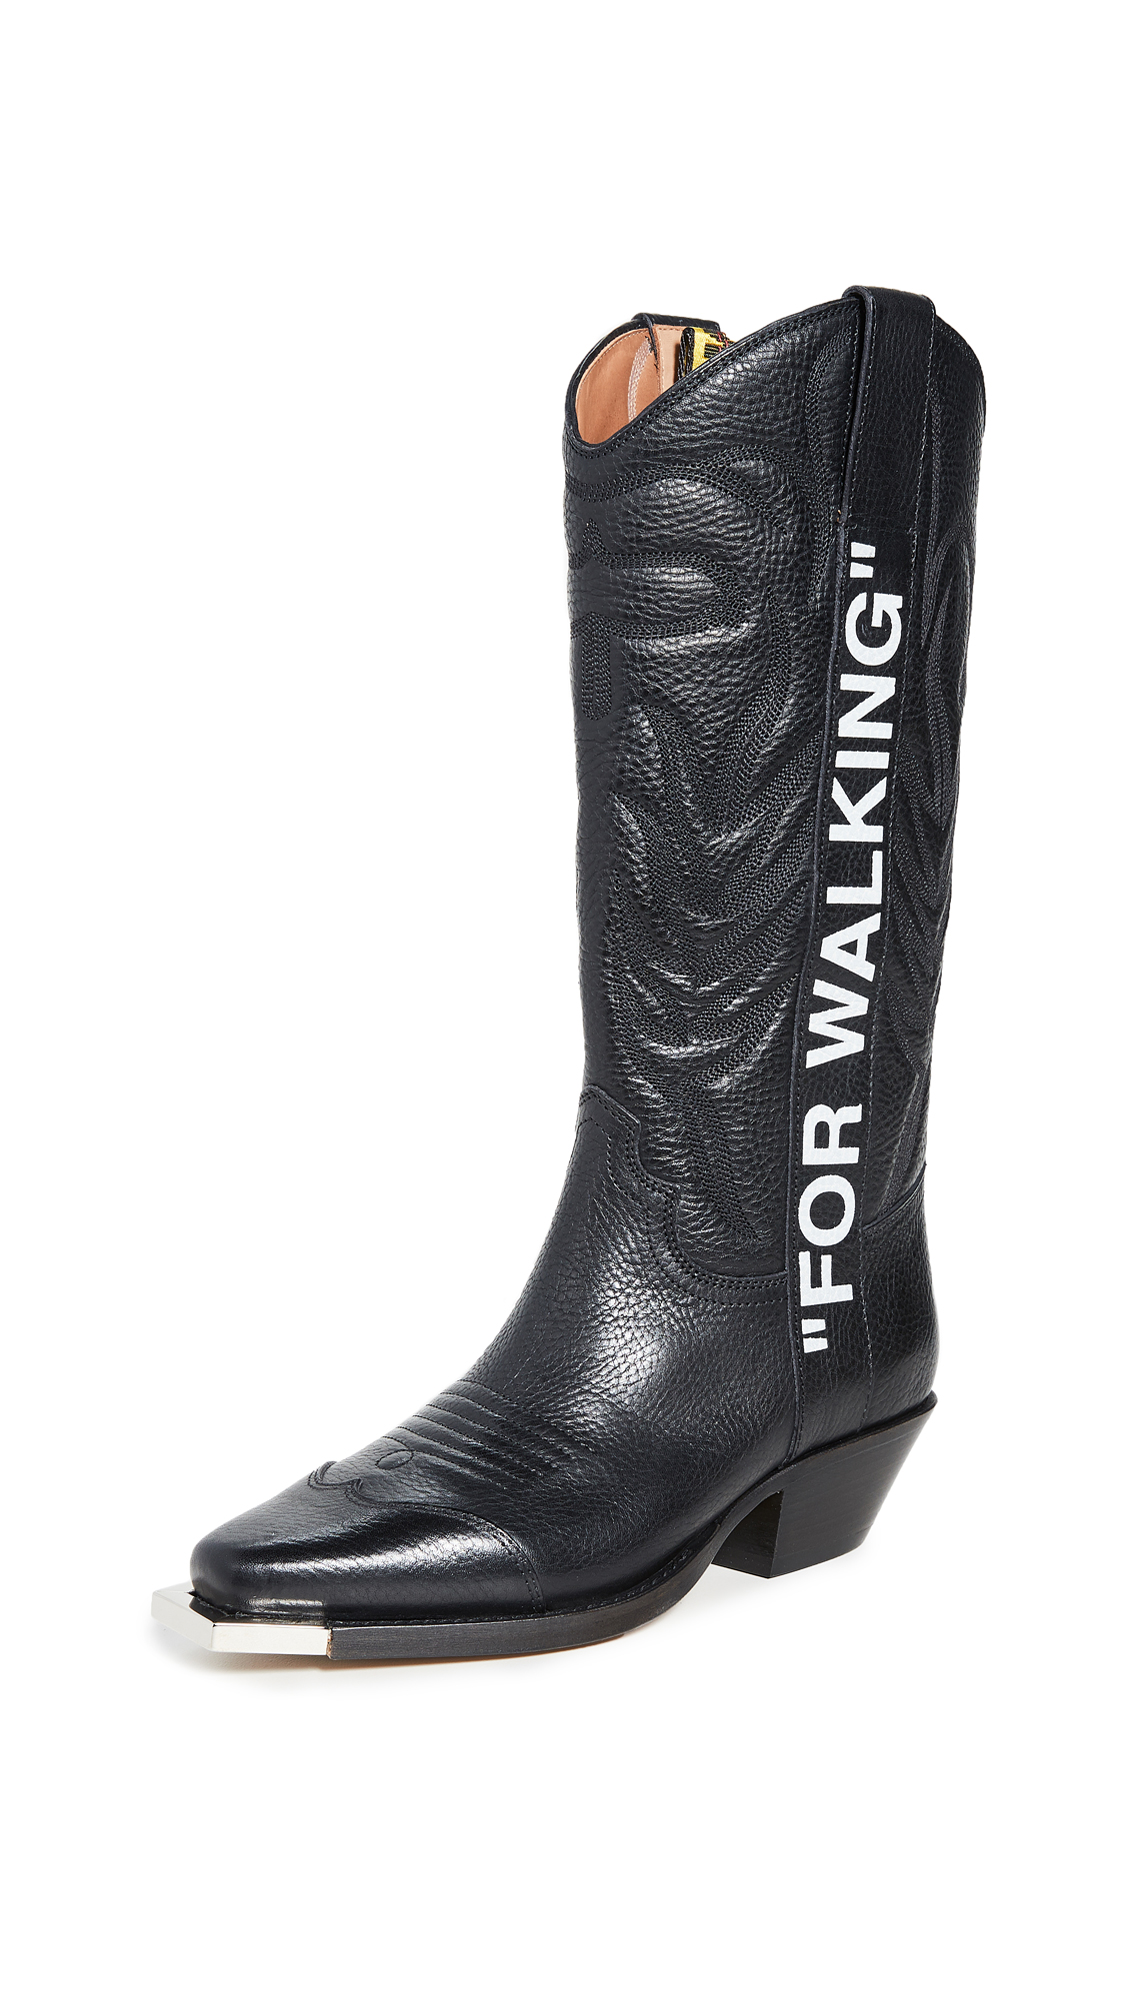 "Off-White For Walking"" Cowboy Boots"" - 50% Off Sale"